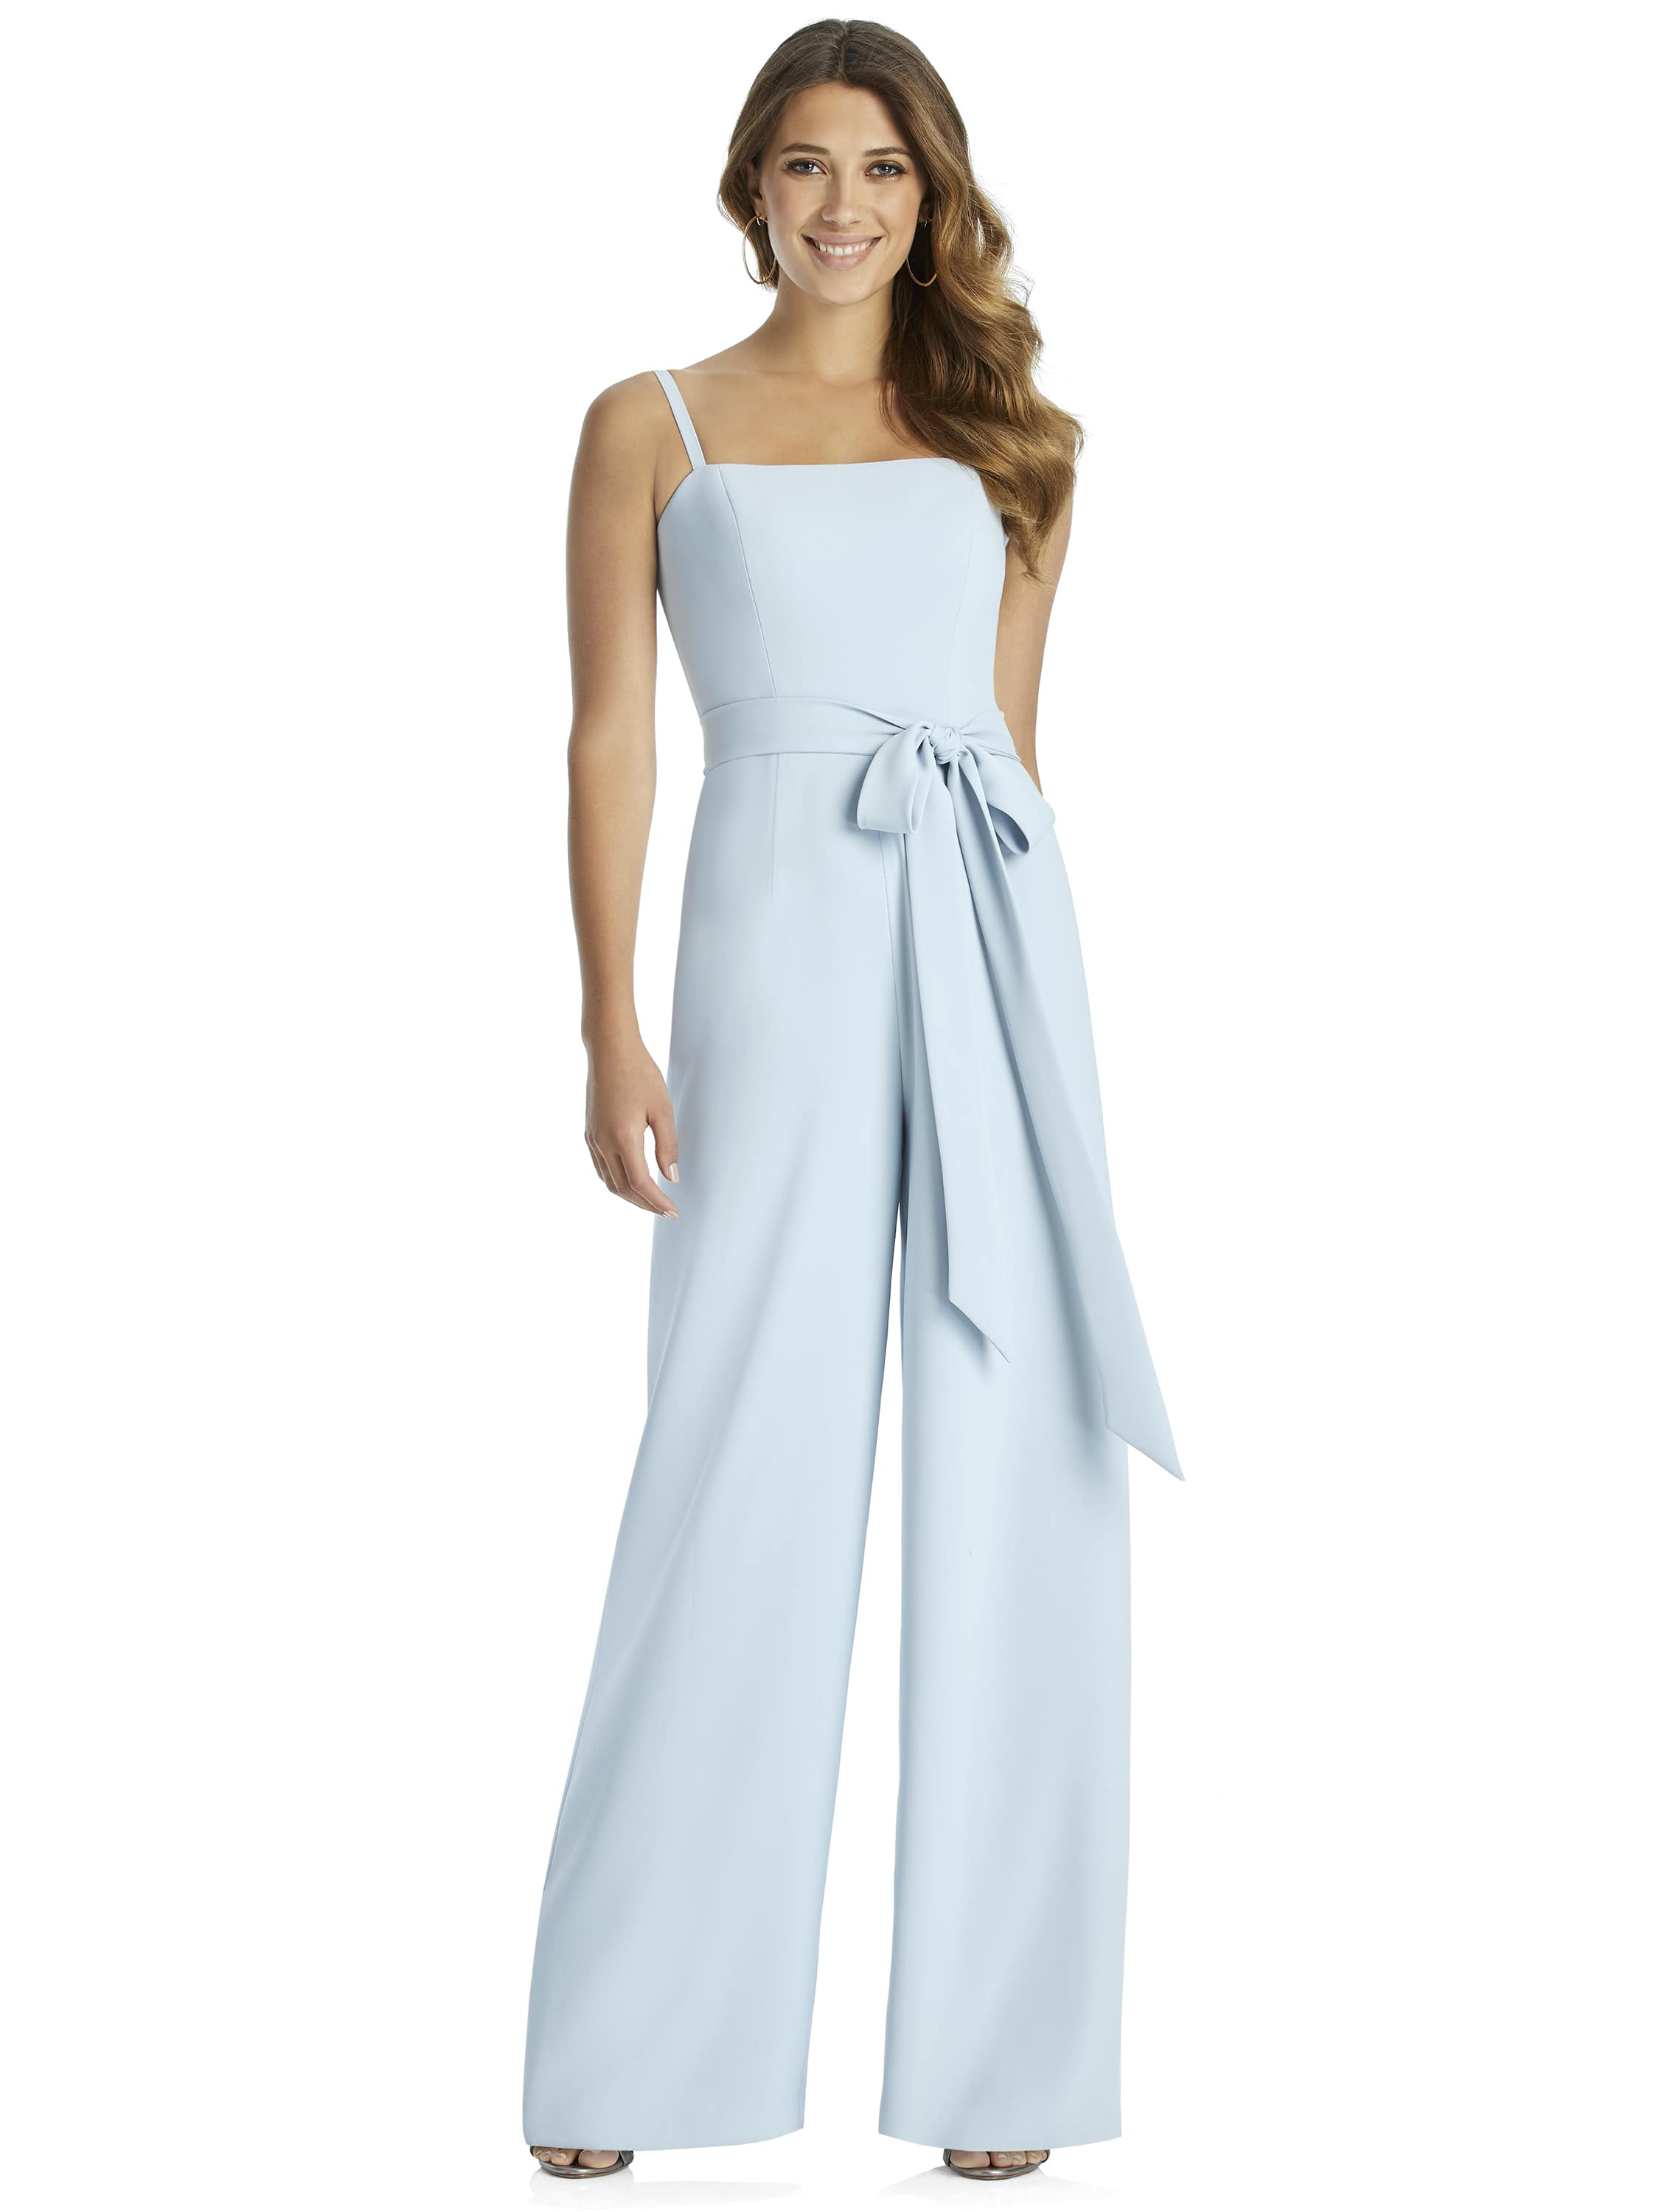 Adelaide jumpsuit by Dessy Group in mist crepe style 3045